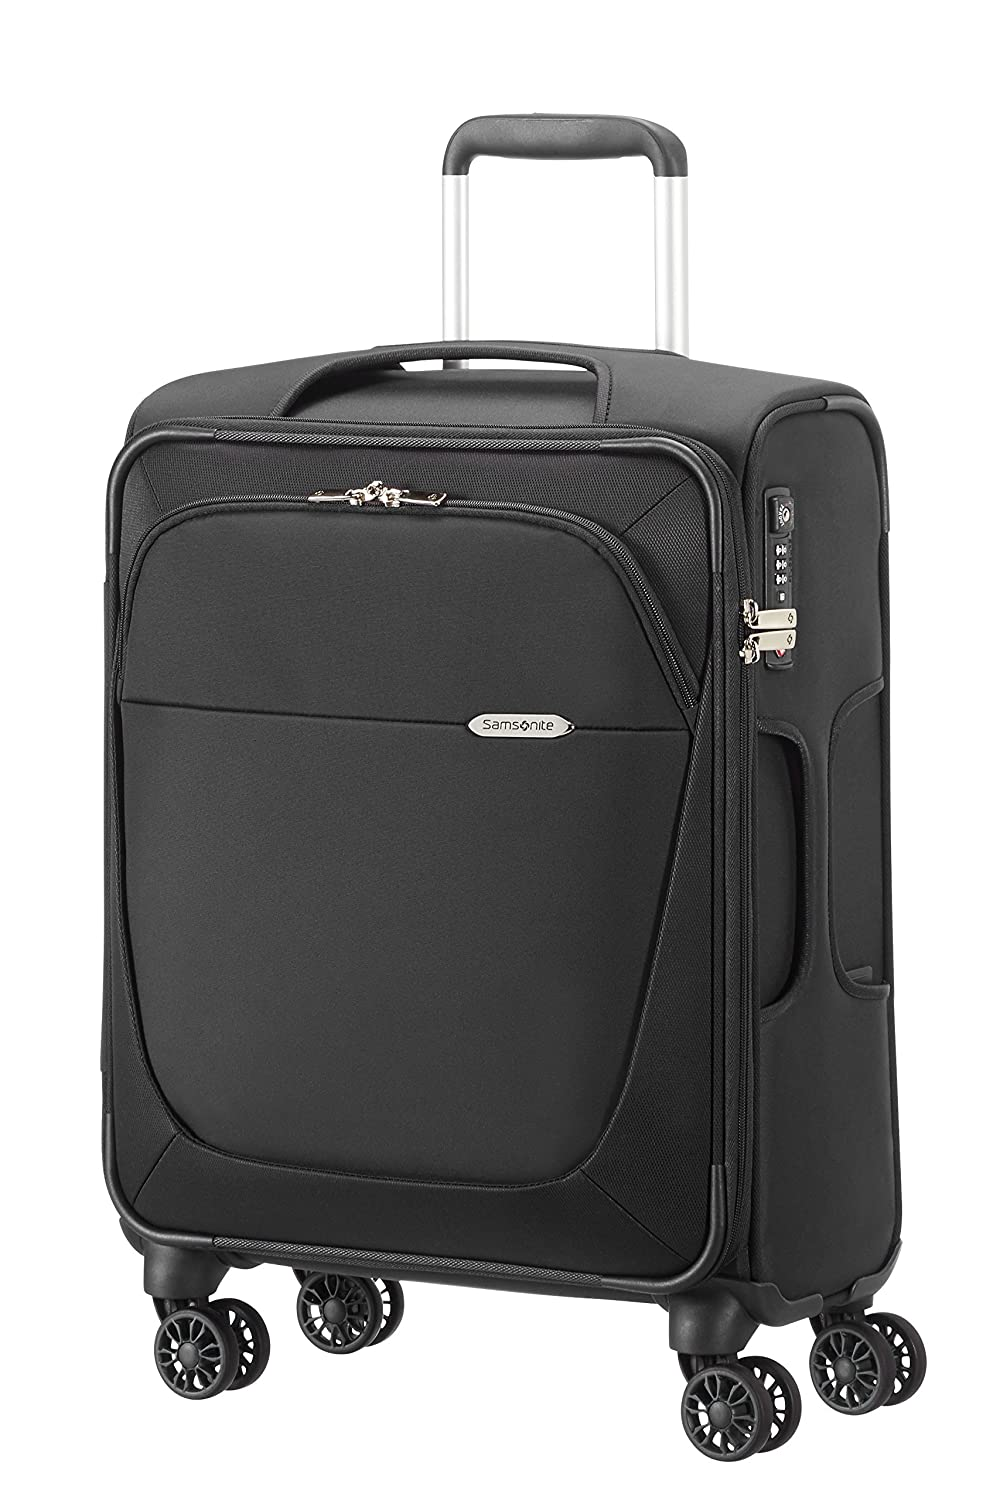 Samsonite B-Lite 3 Test